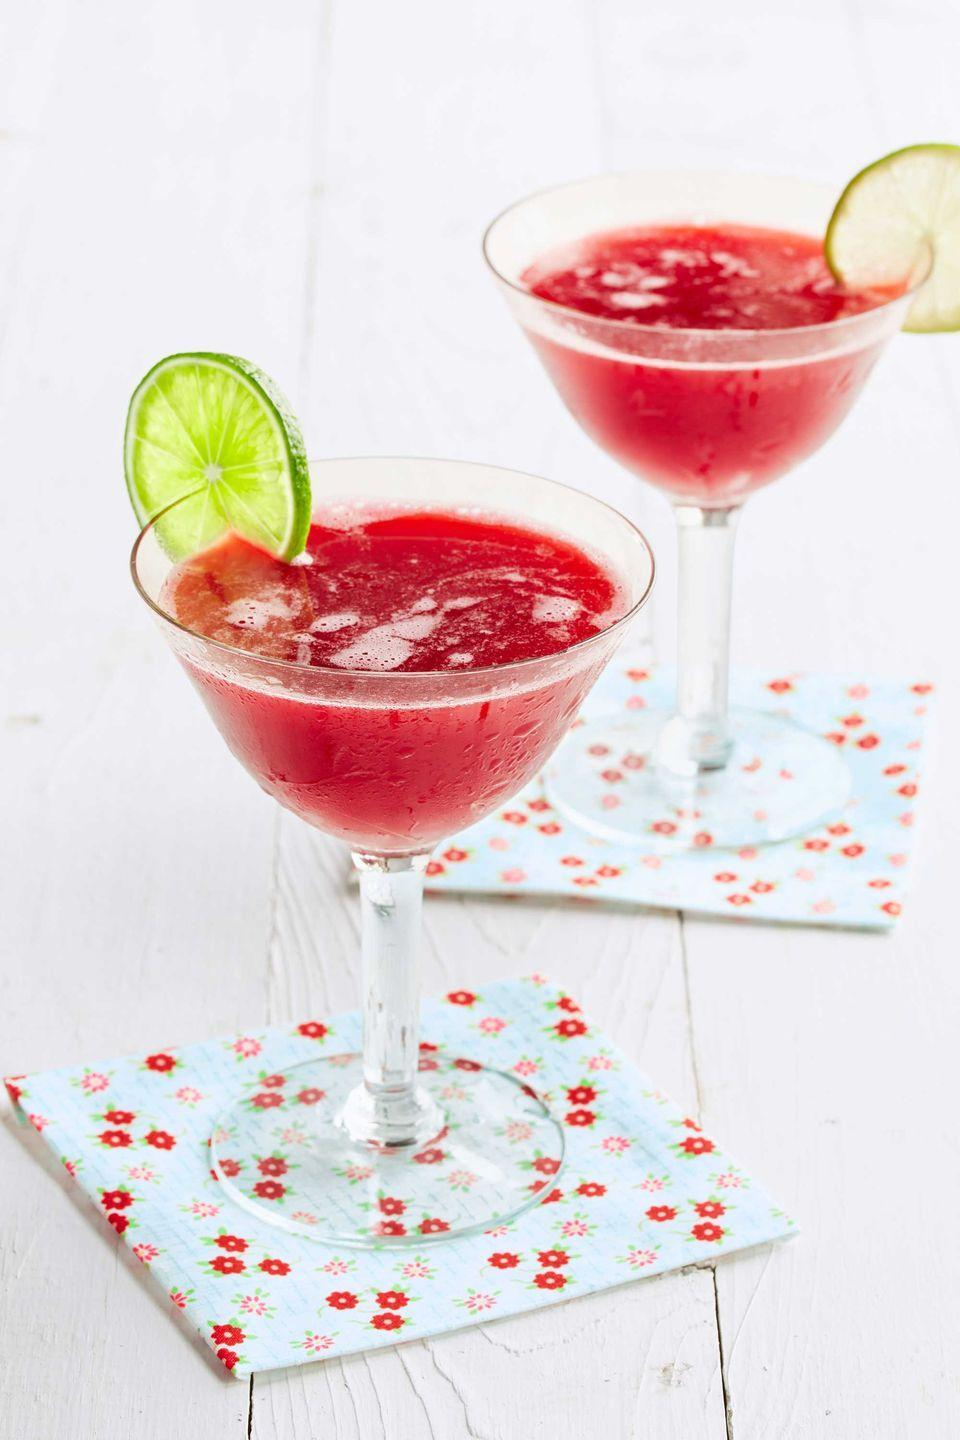 """<p>A good daiquiri will make you feel like your lounging on the beach, even in the middle of winter.</p><p><strong><a href=""""https://www.countryliving.com/food-drinks/recipes/a38959/honeyed-cherry-daiquiri-recipe/"""" rel=""""nofollow noopener"""" target=""""_blank"""" data-ylk=""""slk:Get the recipe"""" class=""""link rapid-noclick-resp"""">Get the recipe</a>.</strong><br></p><p><a class=""""link rapid-noclick-resp"""" href=""""https://www.amazon.com/Elite-Cocktail-Shaker-Bartender-BARILLIO/dp/B01L6R2O0O/?tag=syn-yahoo-20&ascsubtag=%5Bartid%7C10050.g.30433150%5Bsrc%7Cyahoo-us"""" rel=""""nofollow noopener"""" target=""""_blank"""" data-ylk=""""slk:SHOP BAR TOOLS"""">SHOP BAR TOOLS</a><br></p>"""